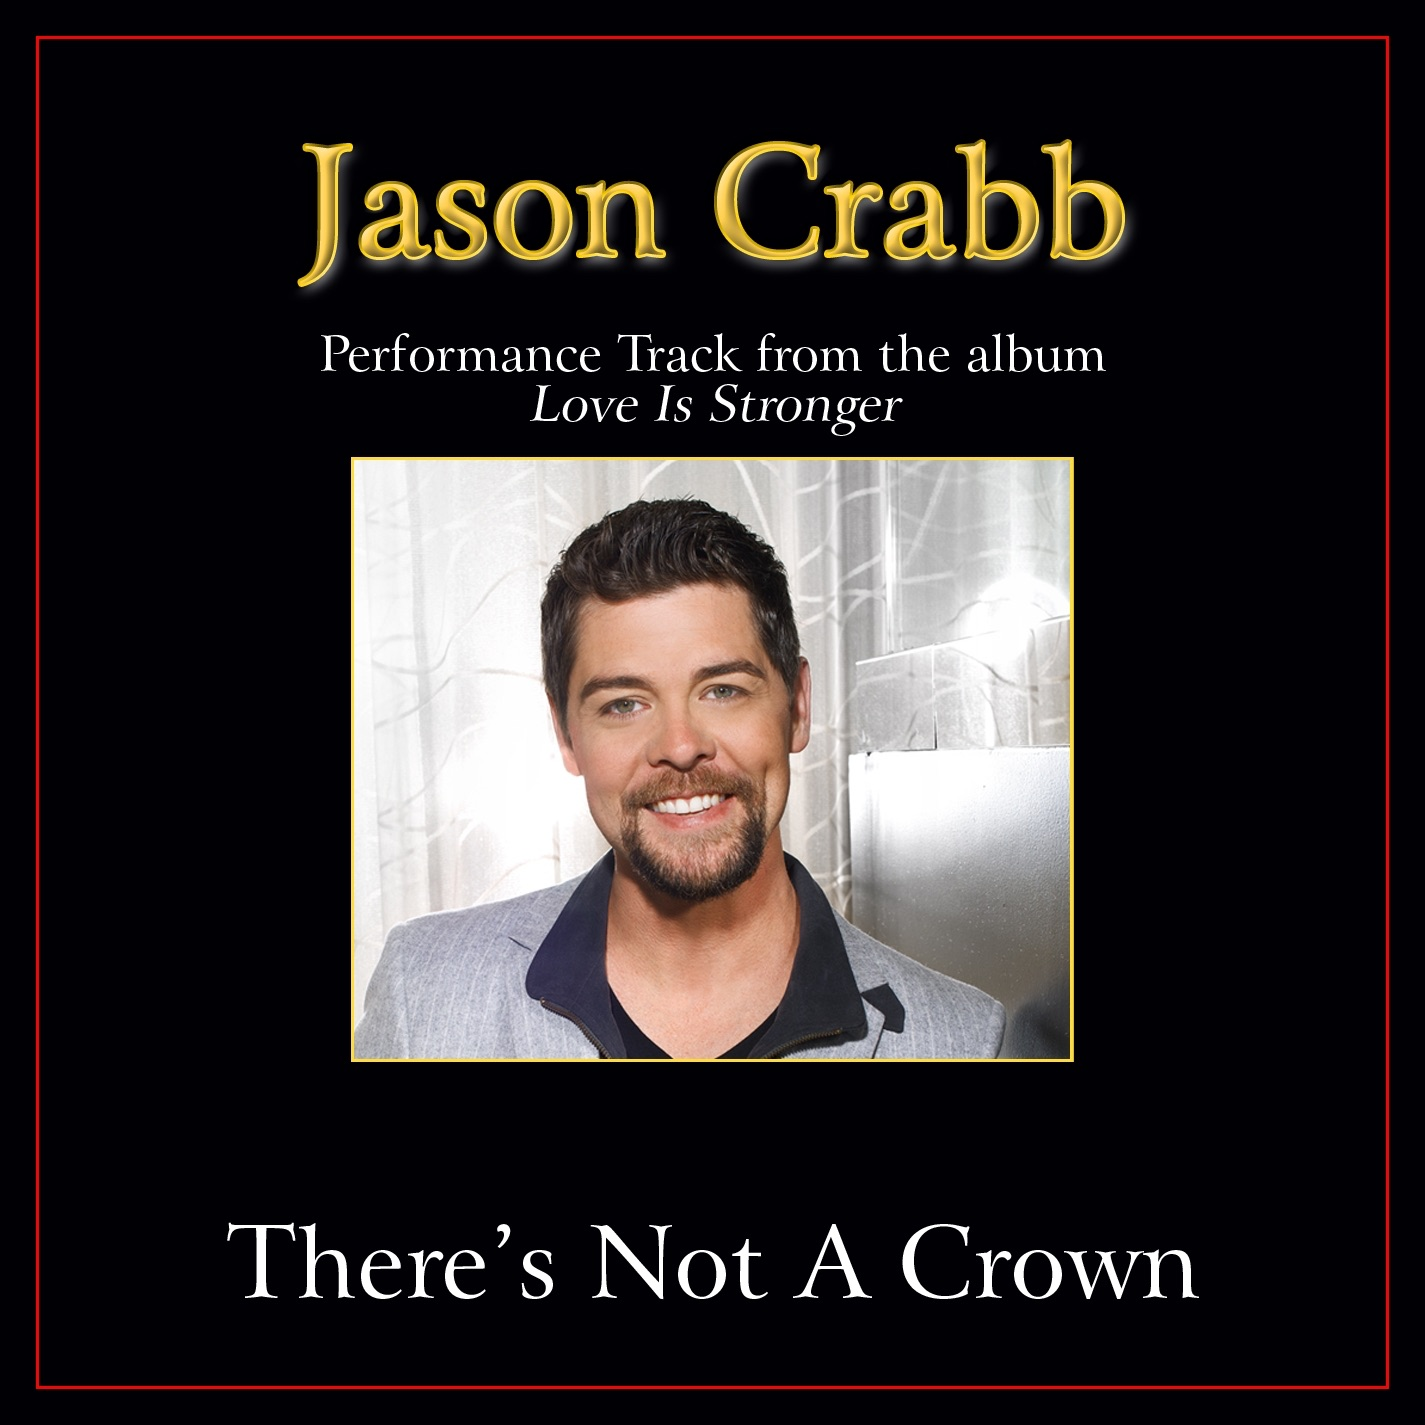 There's Not a Crown (Without a Cross) Performance Tracks - Single